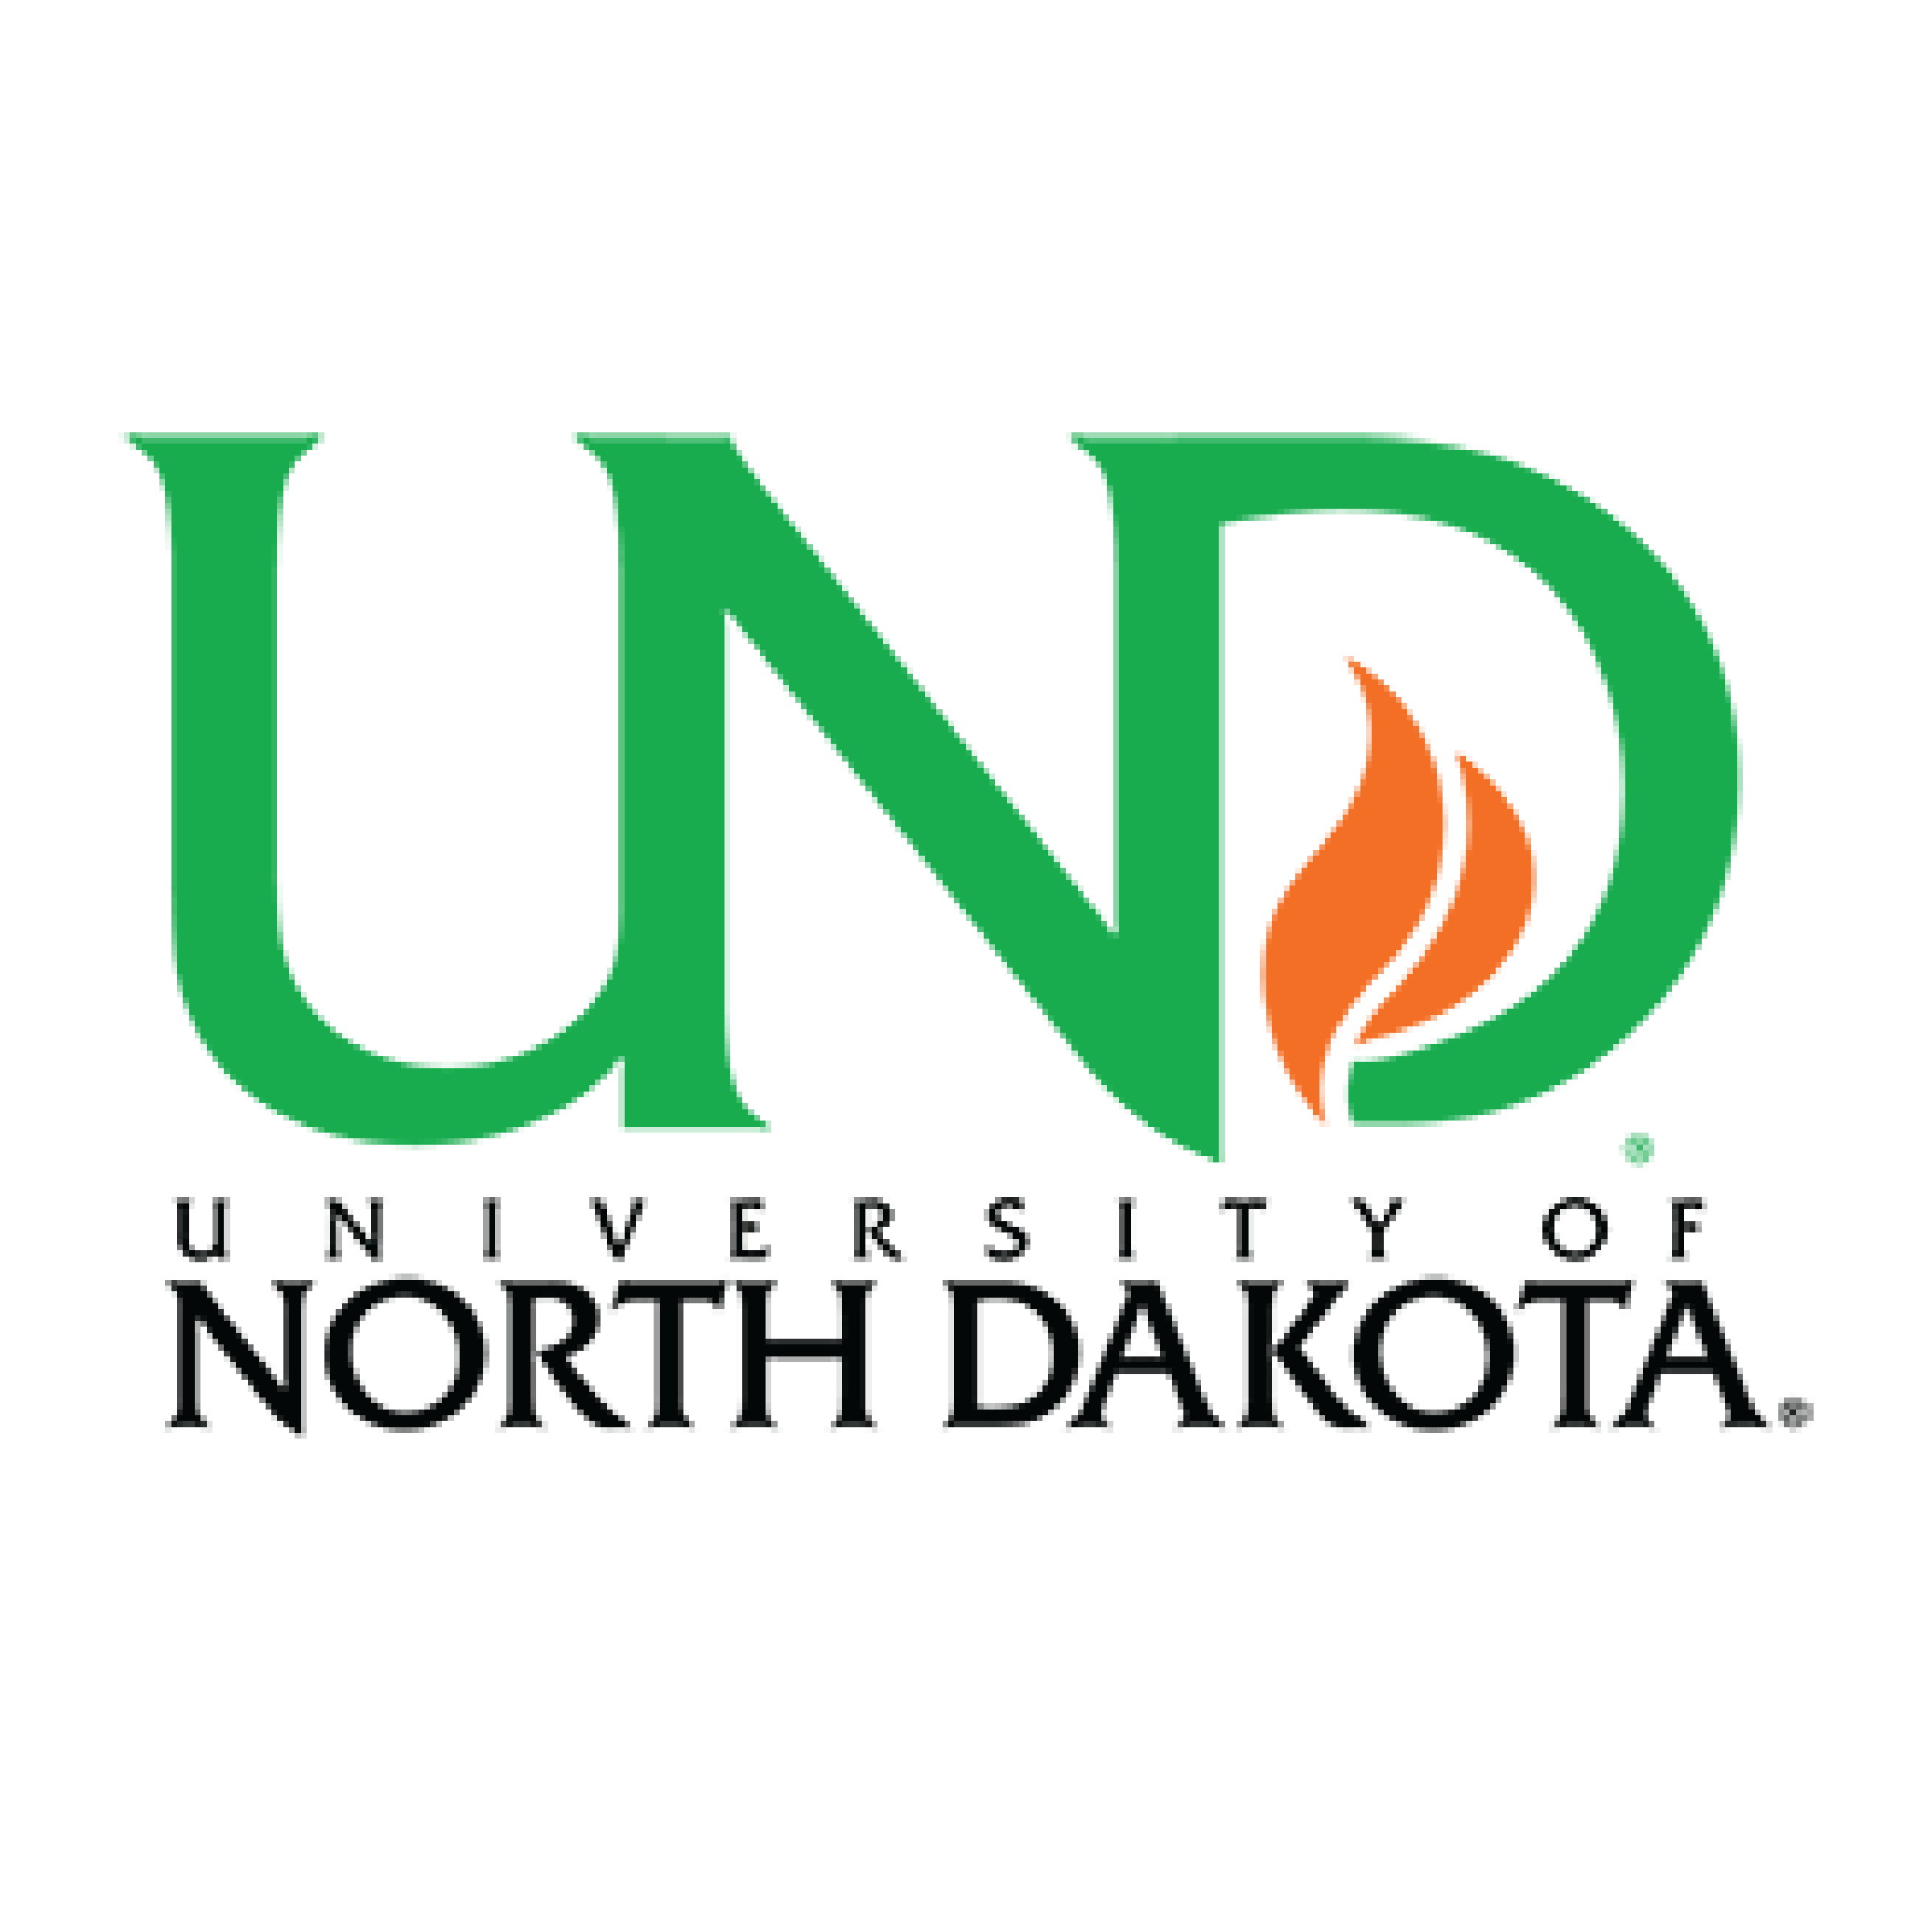 University of North Dakota   701.777.3000 1.800.CALL.UND UND.info@UND.edu